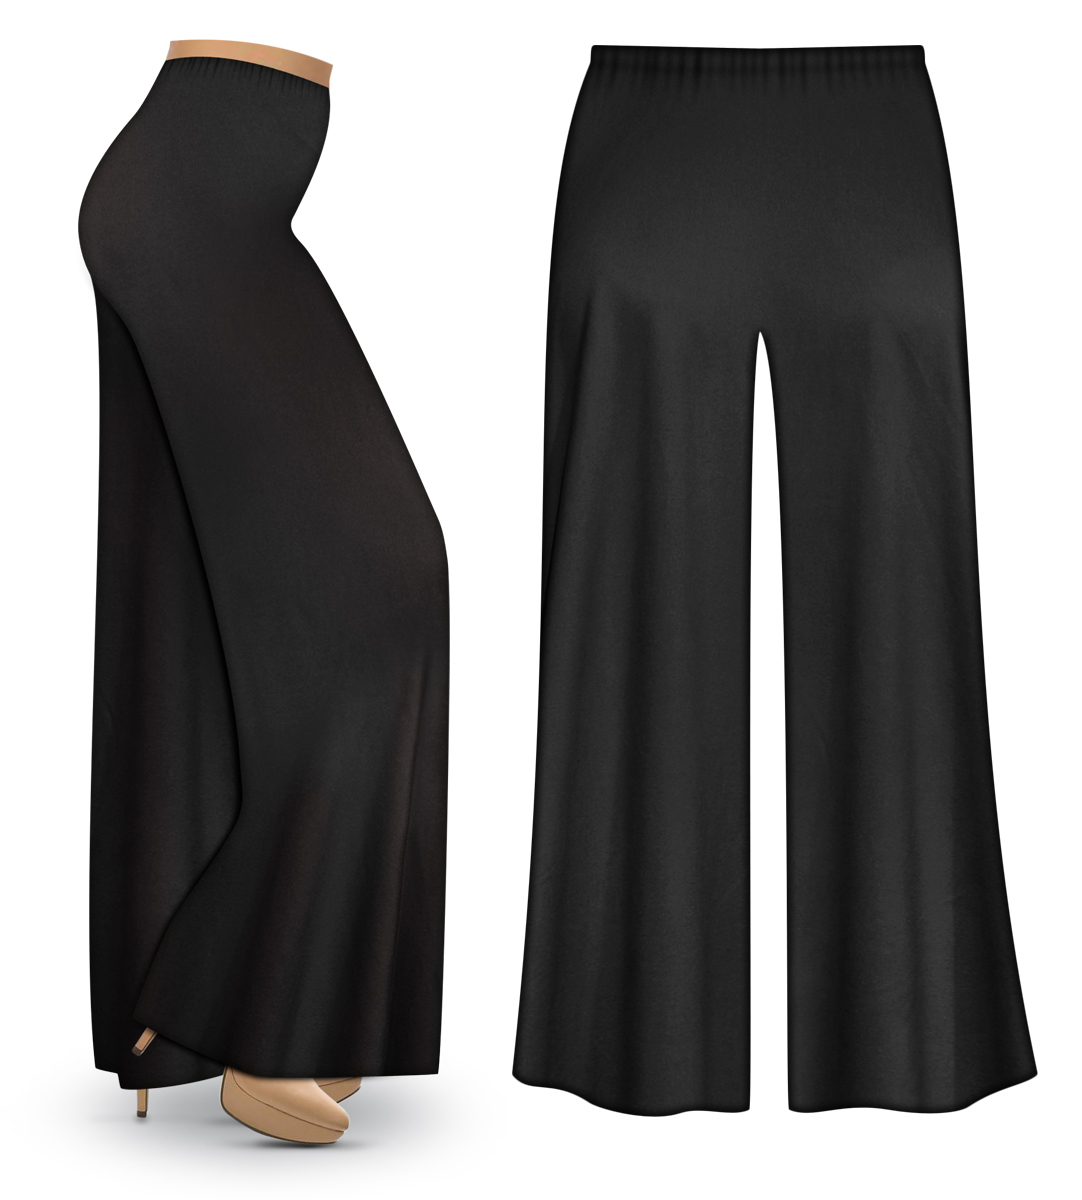 80e8165ca9a47 Black Wide Leg Plus Size Palazzo Pants with Elastic Waist ...